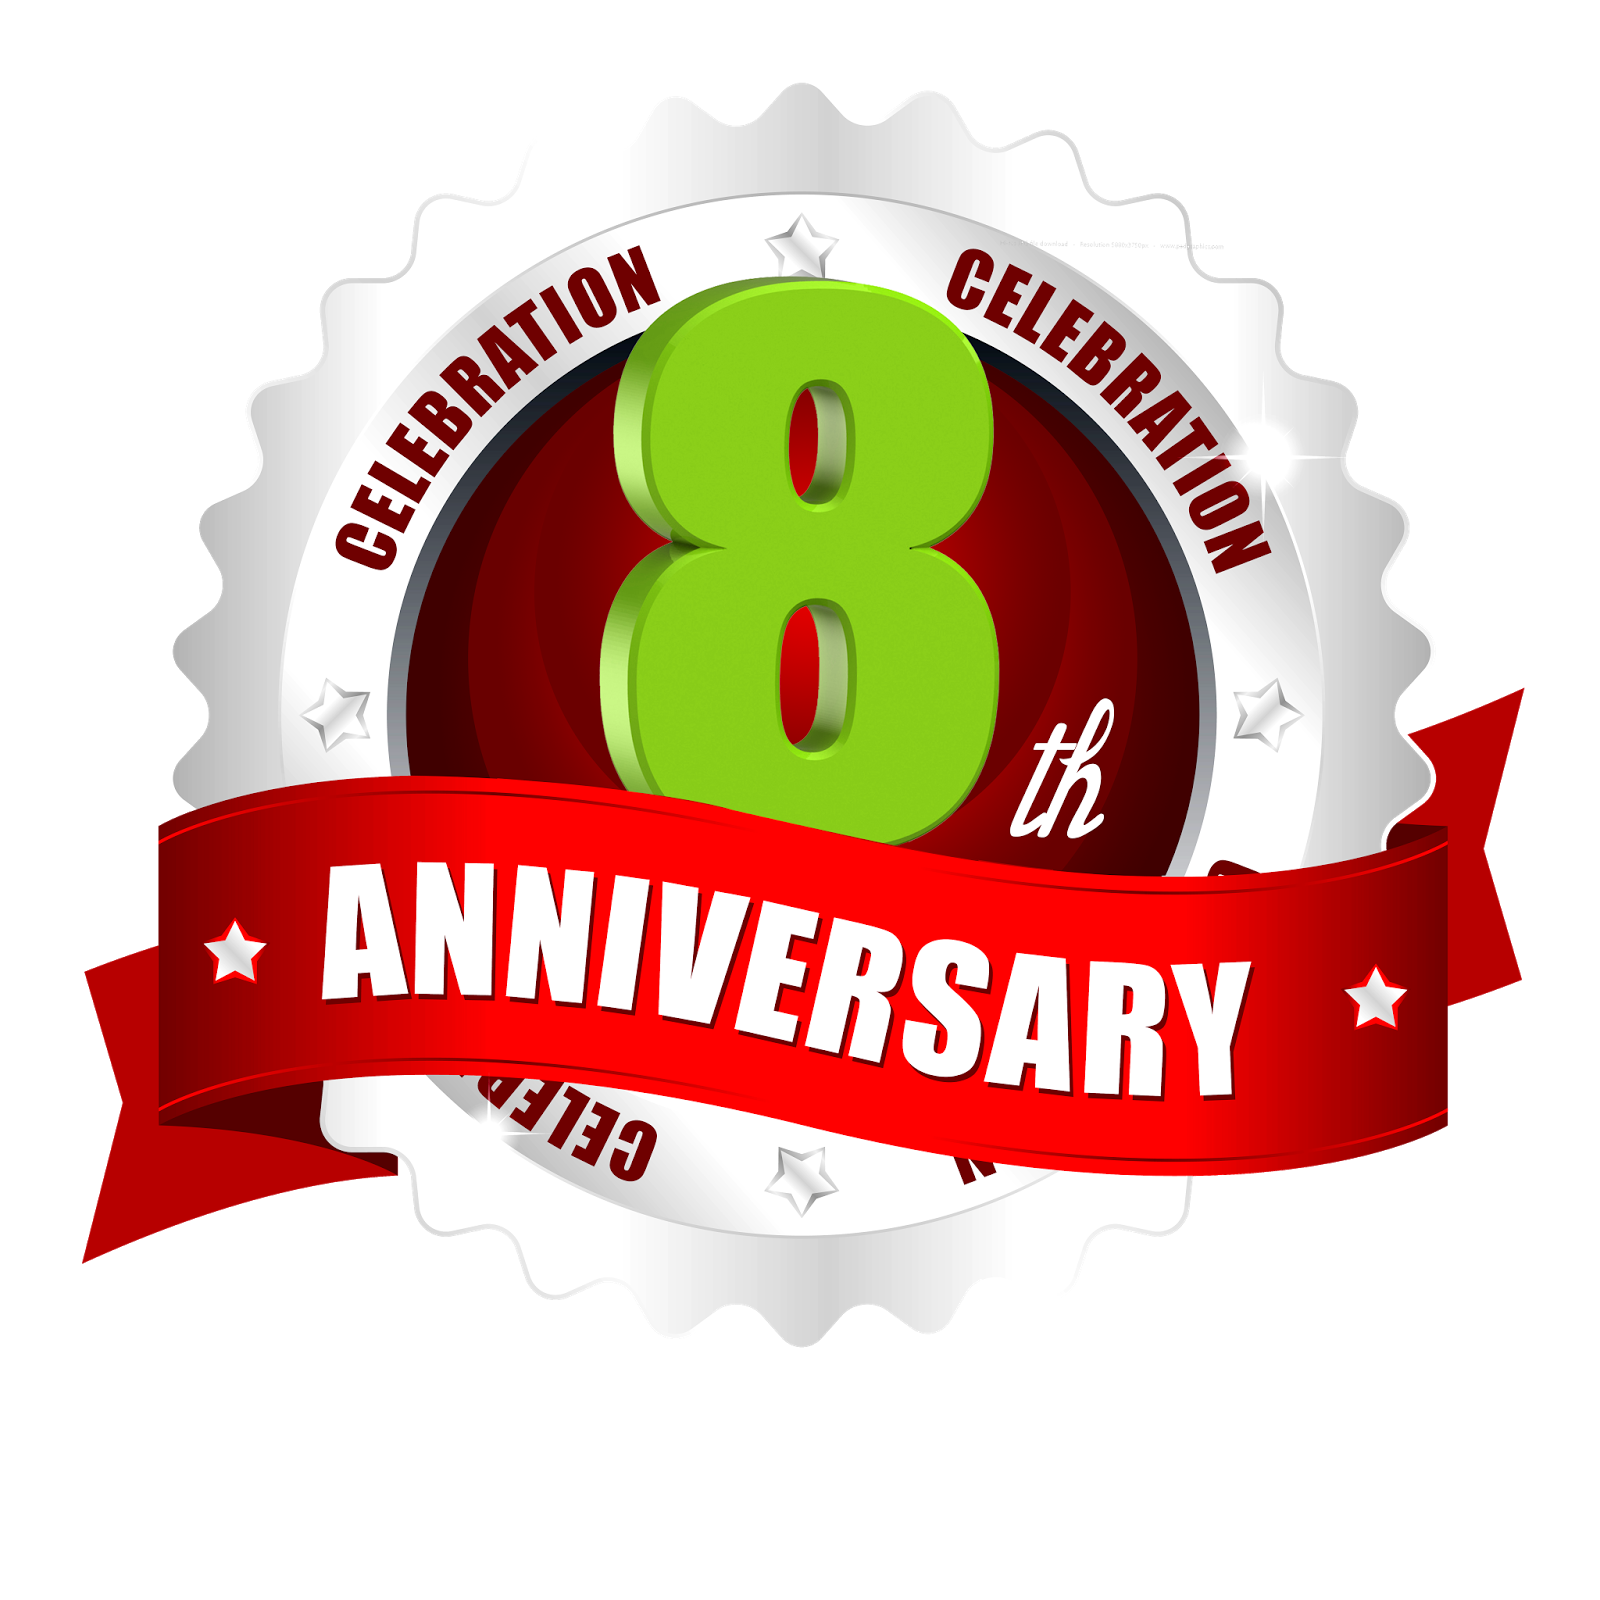 ... anniversary latest png vector logo template free downloads : naveengfx